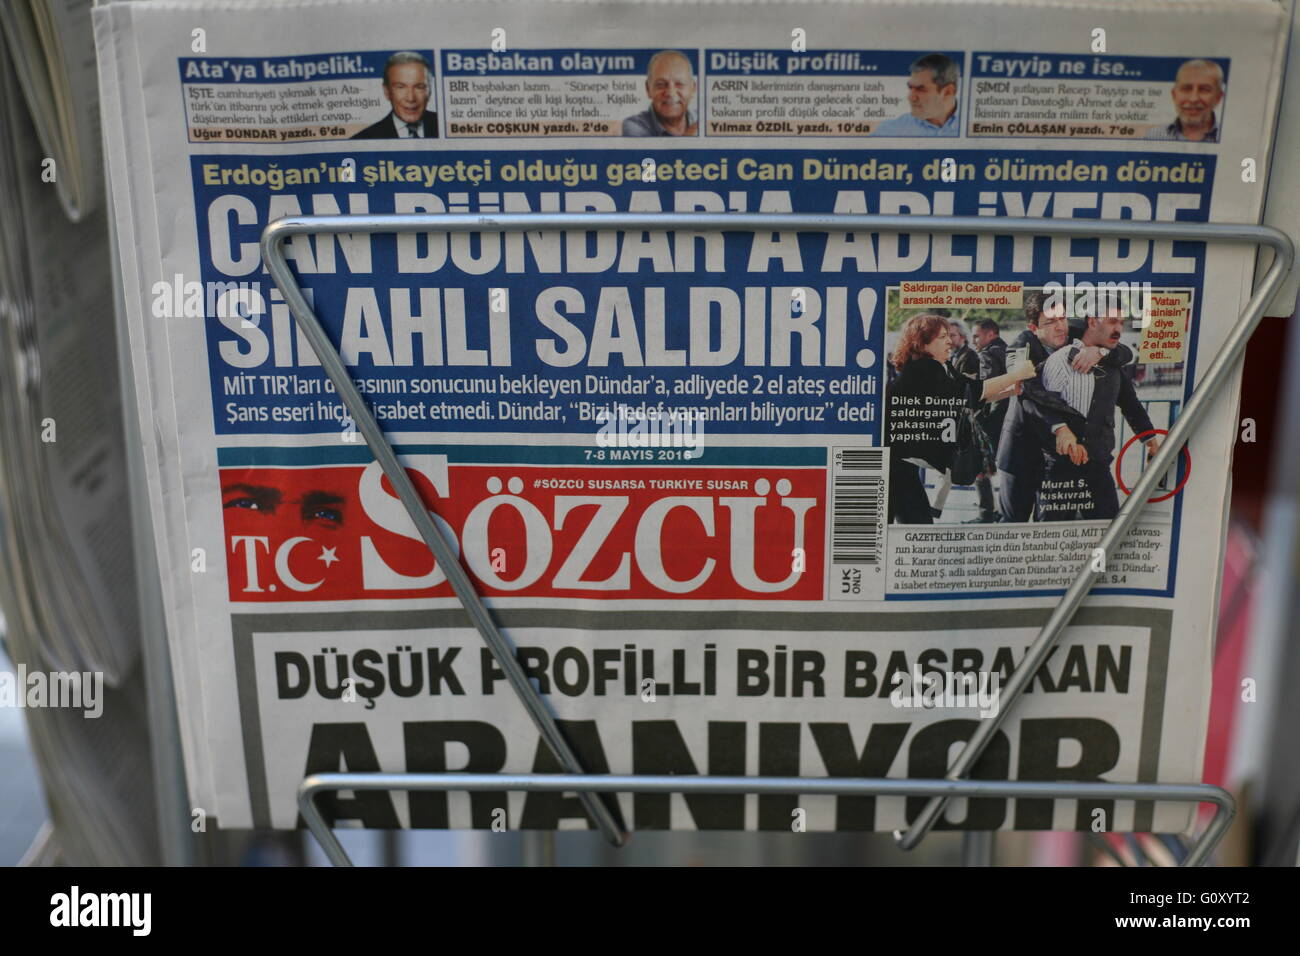 Headline of the newspaper Sözcü about the problems in Istanbul, Turkey - Stock Image